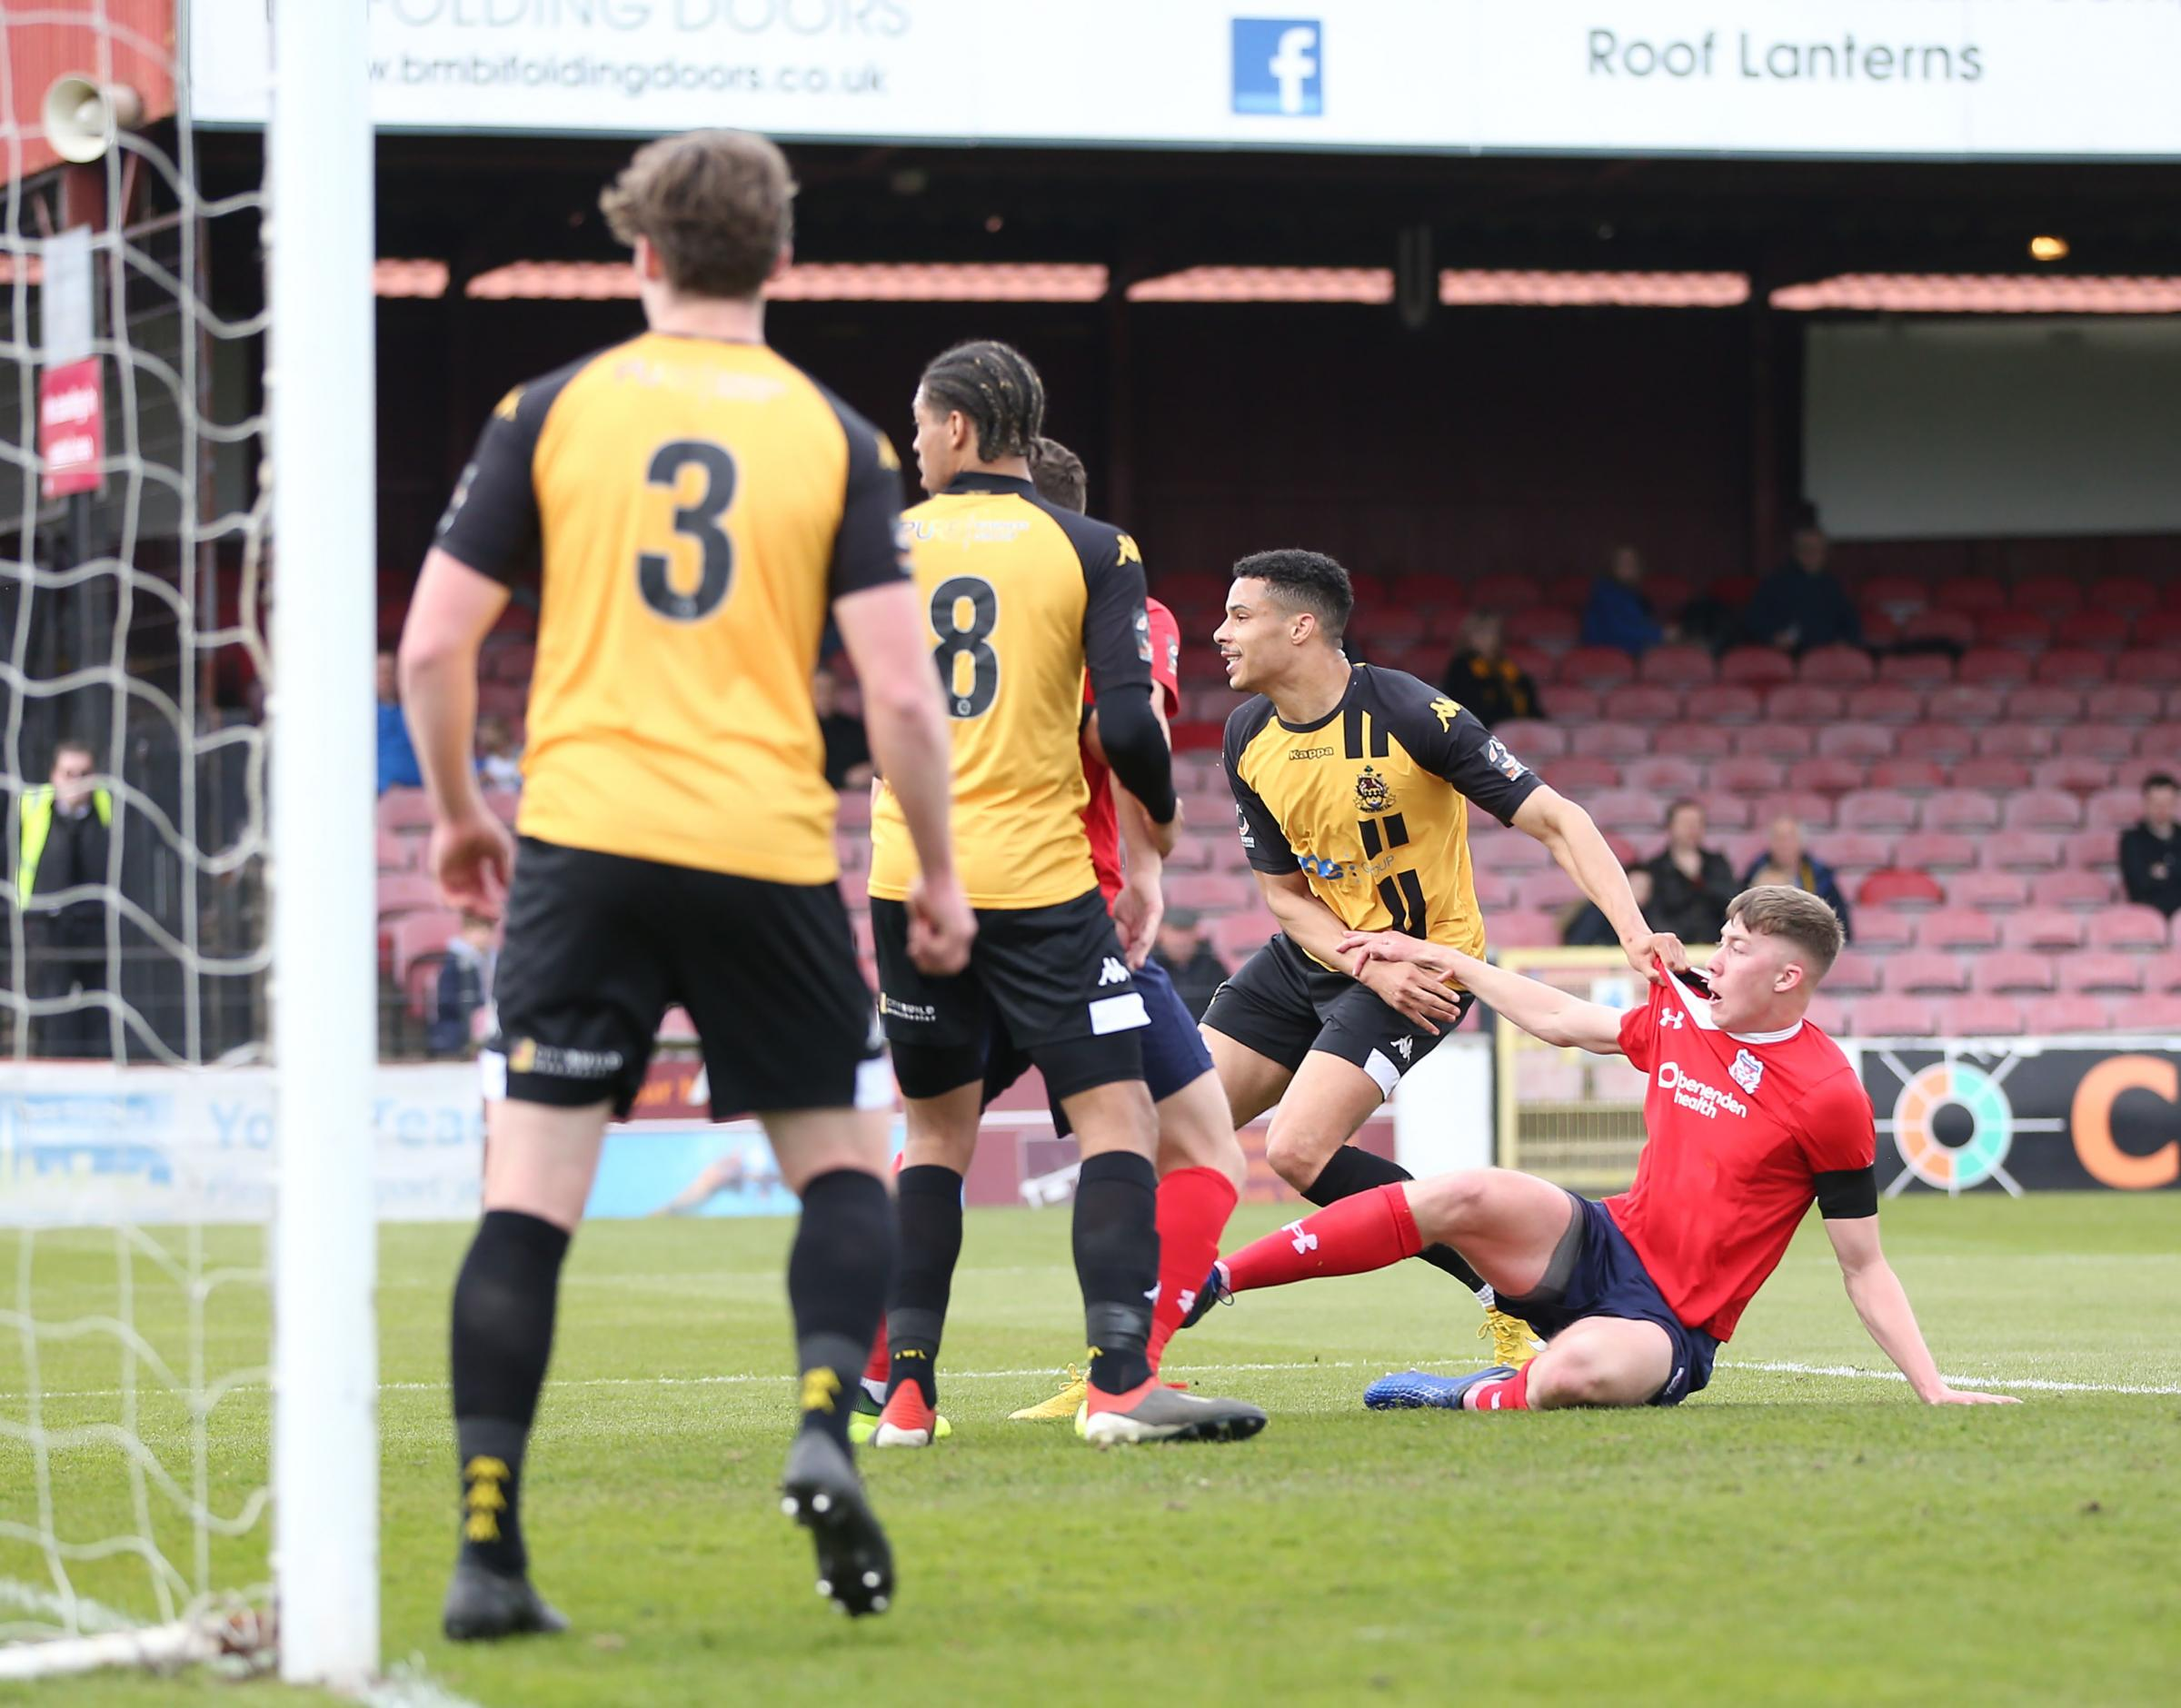 HAPPY TO BE PICKED UP: Teenage defender Jasper Moon, pictured on his senior debut for York City against Southport, has been delighted to be given a chance to get used to the physical side of men's football during his loan spell from Barnsley. Picture: